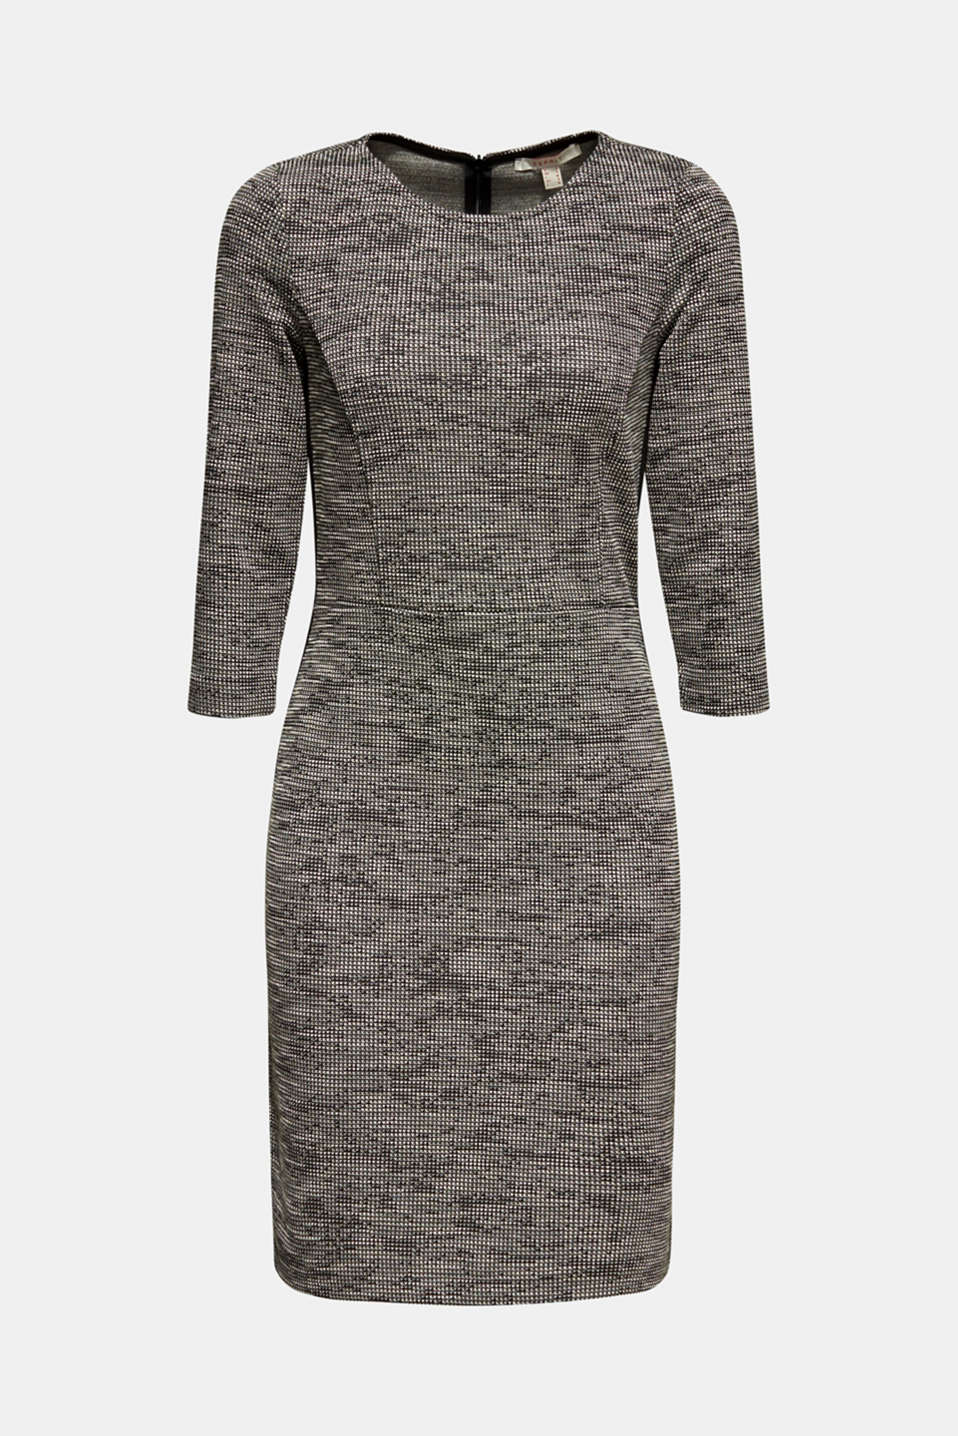 Stretch jersey dress with a two-tone texture, BLACK 4, detail image number 6